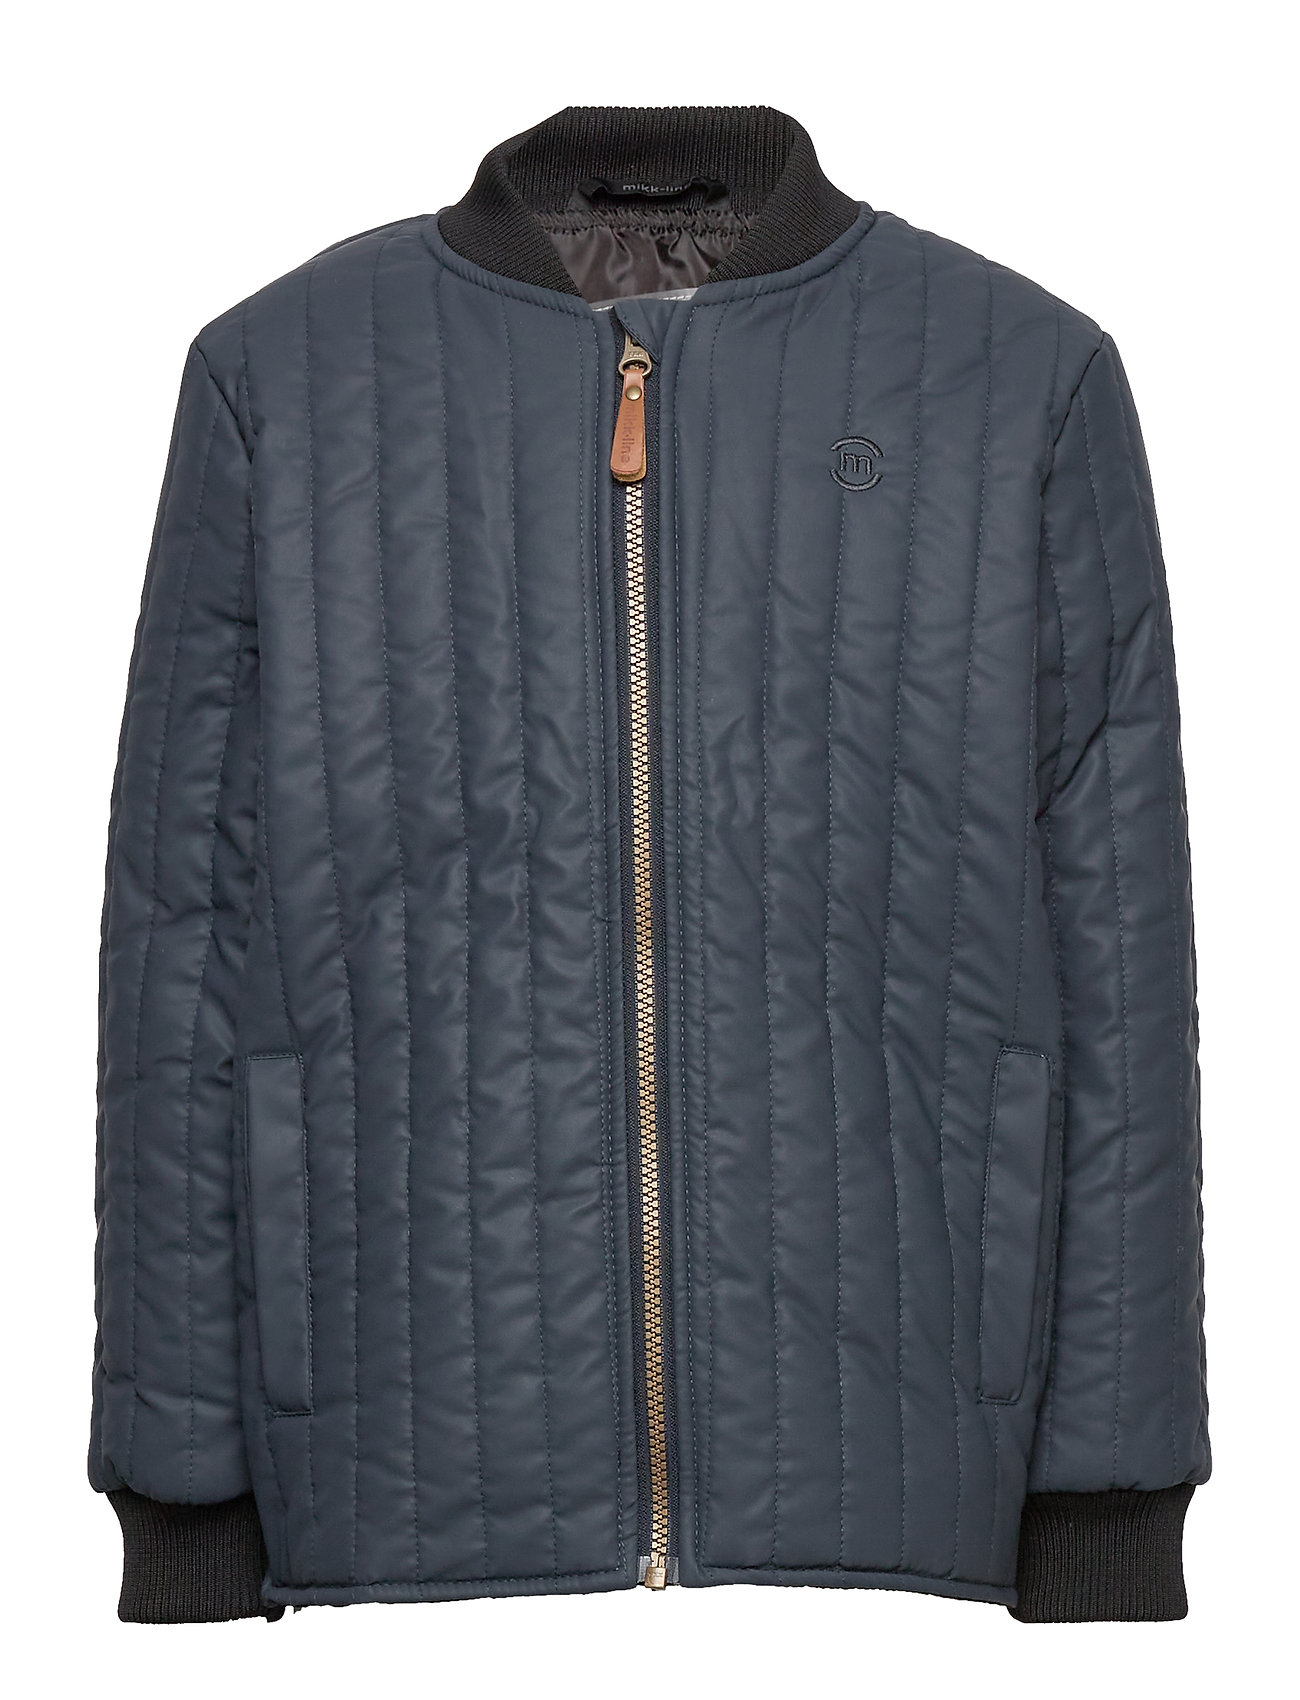 Image of Duvet Boys Jacket Outerwear Thermo Outerwear Thermo Jackets Blå Mikk-Line (3406311229)